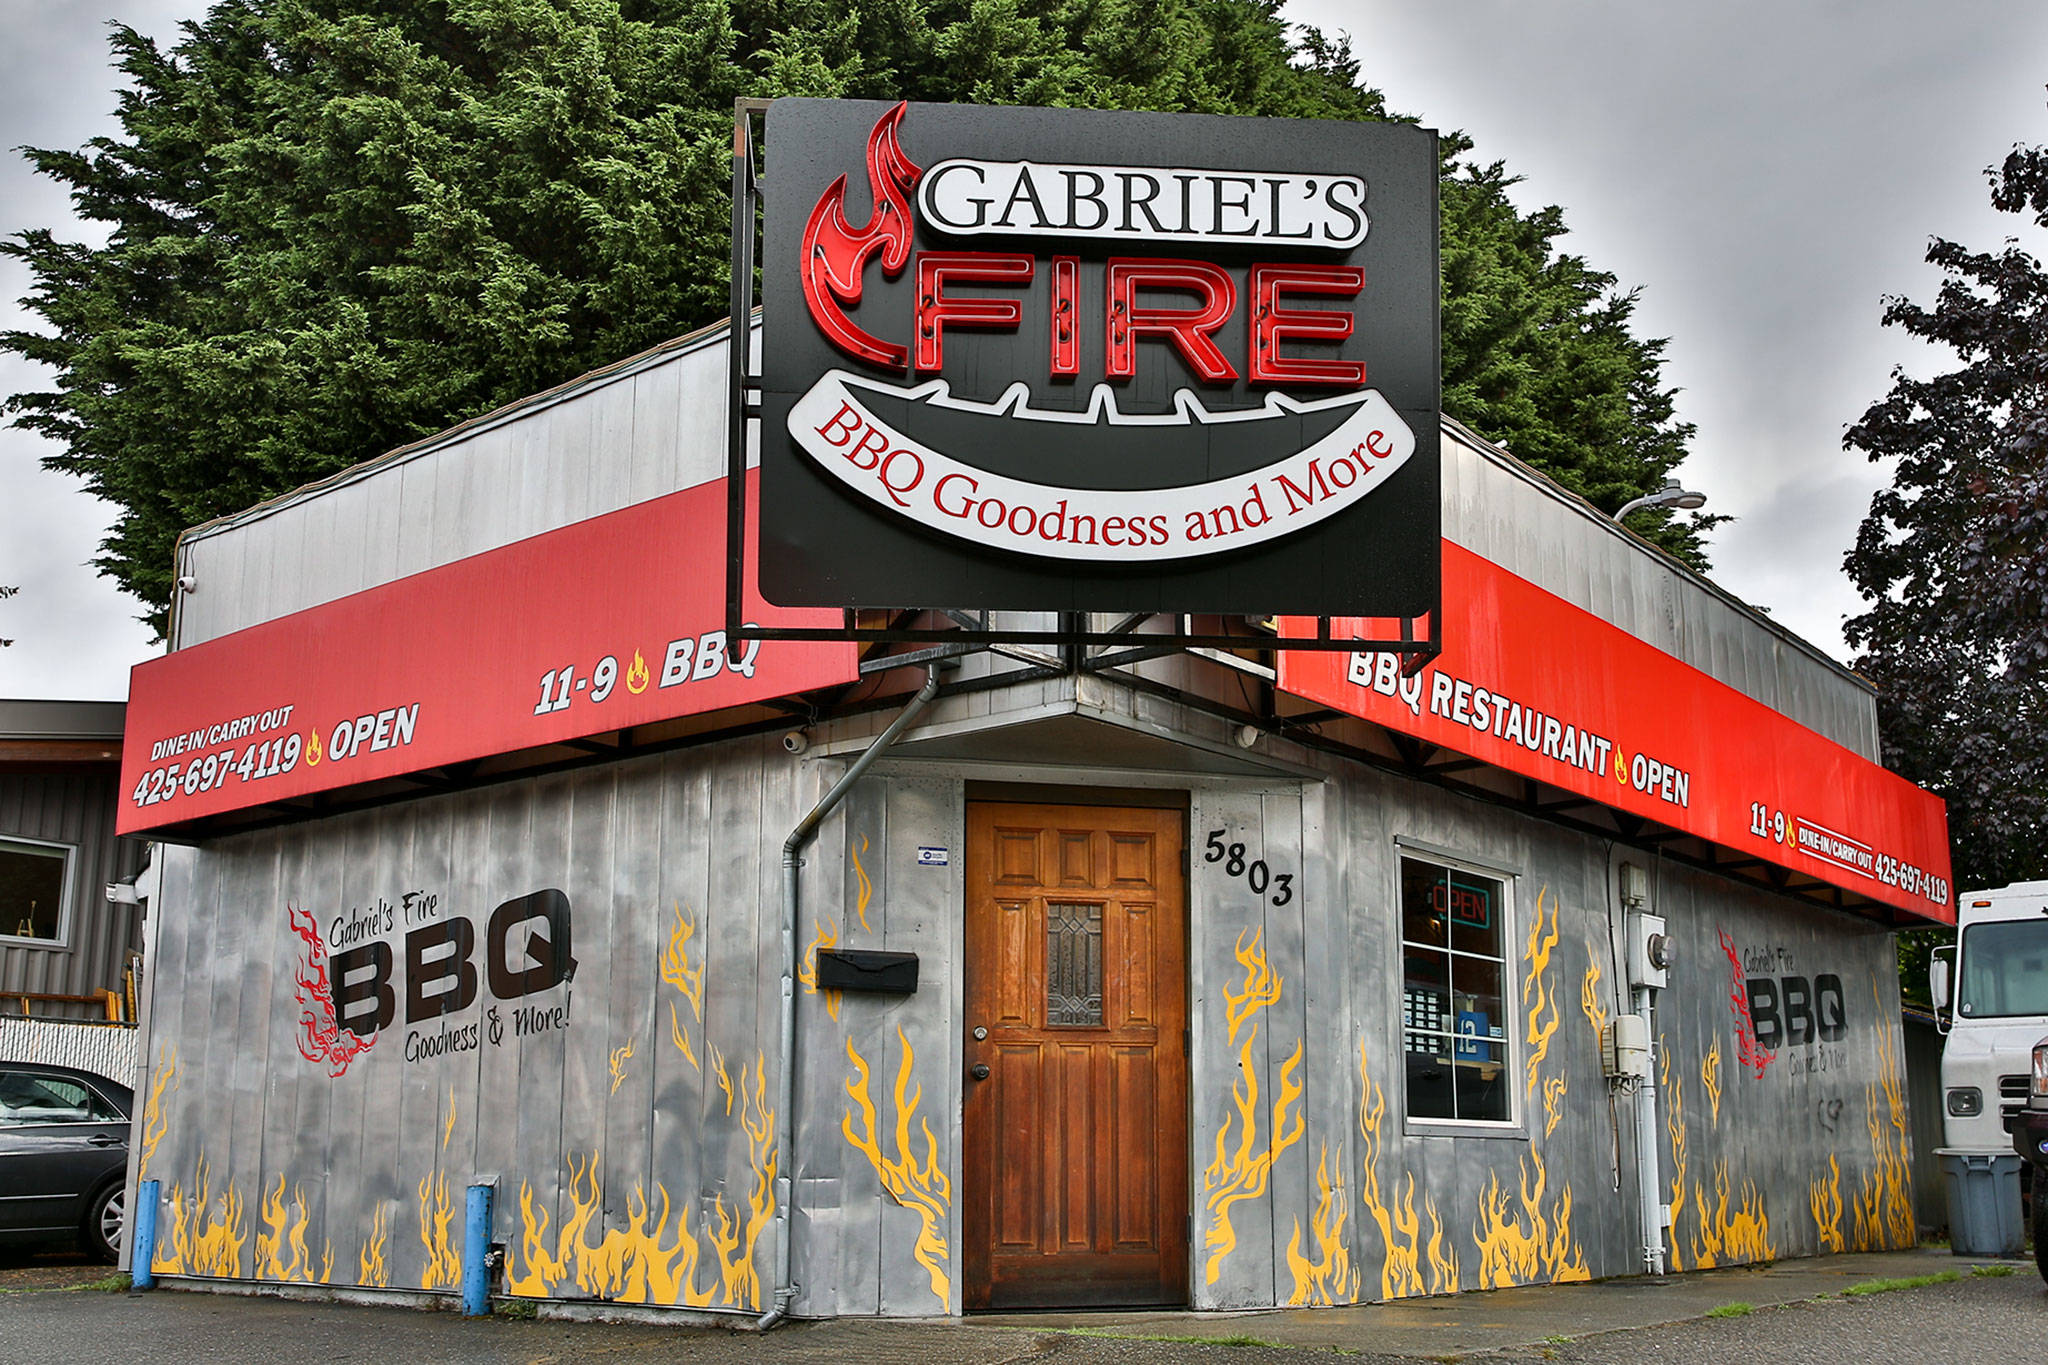 Gabriel's Fire has closed its small dining area to comply with state COVID regulations. (Kevin Clark / The Herald)